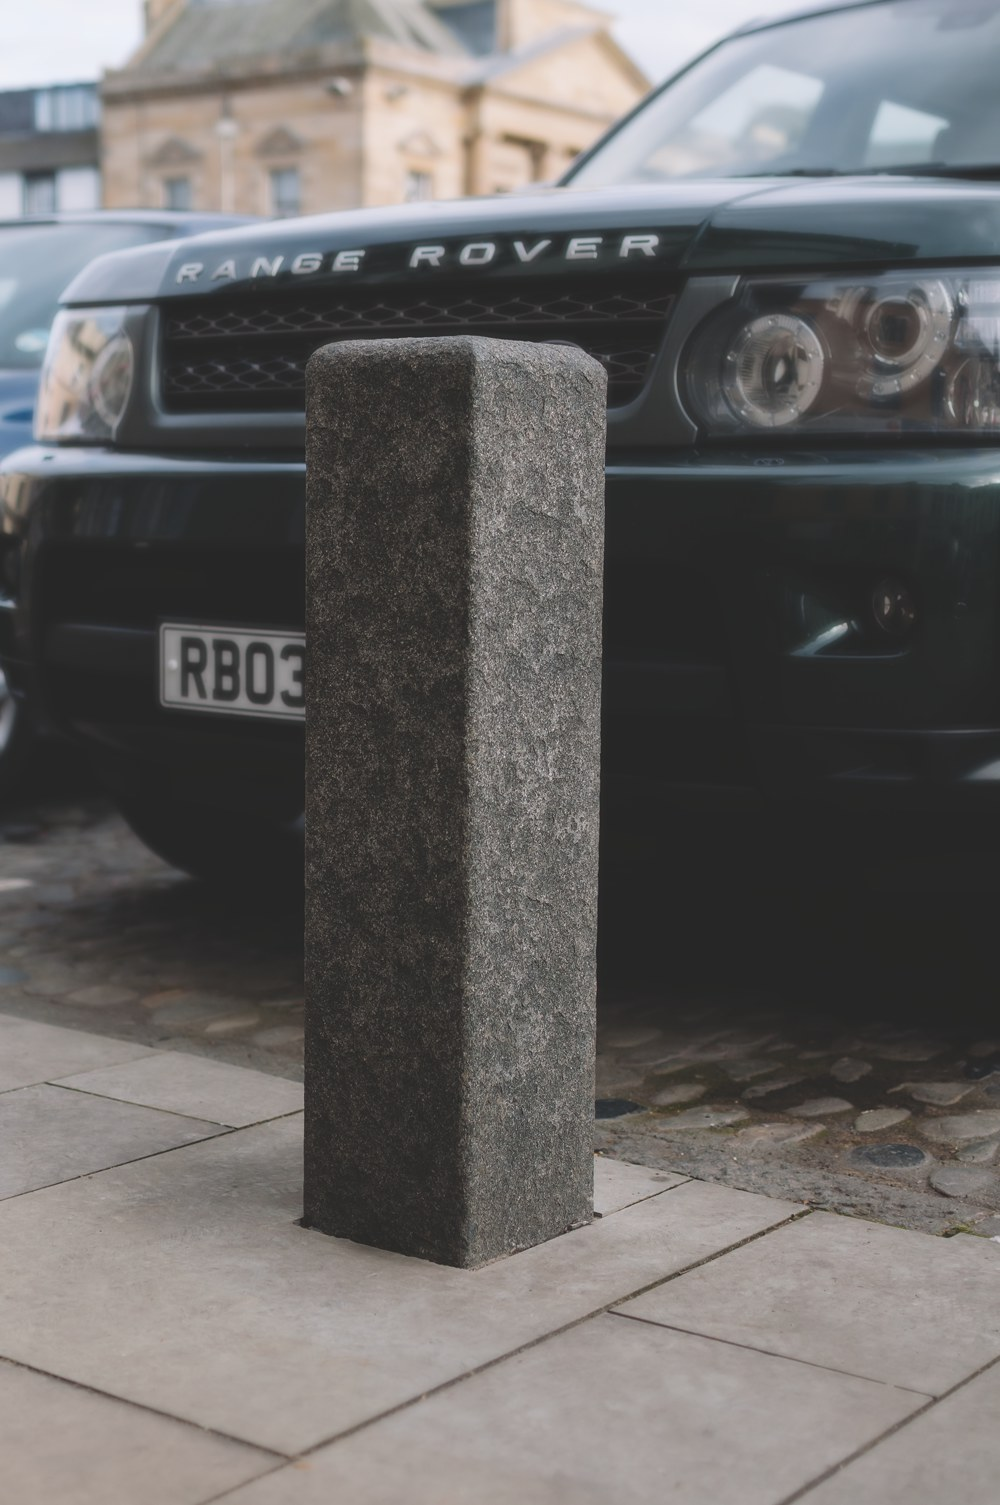 scottish.whin.stone.street.furniture.suppliers.tradstocks.public.realm.traffic.calming.parking.bollard.jpg